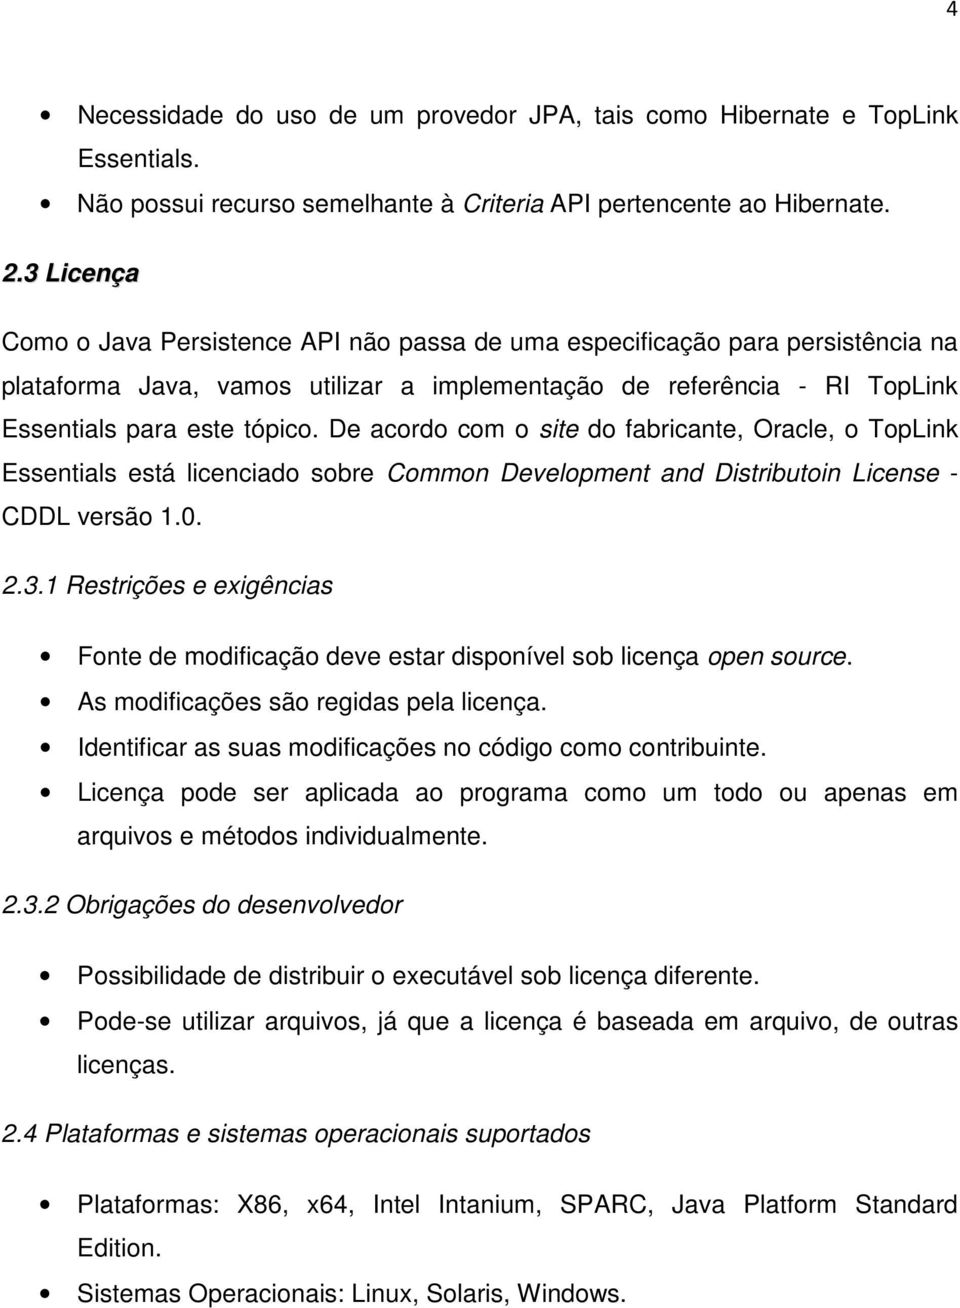 De acordo com o site do fabricante, Oracle, o TopLink Essentials está licenciado sobre Common Development and Distributoin License - CDDL versão 1.0. 2.3.